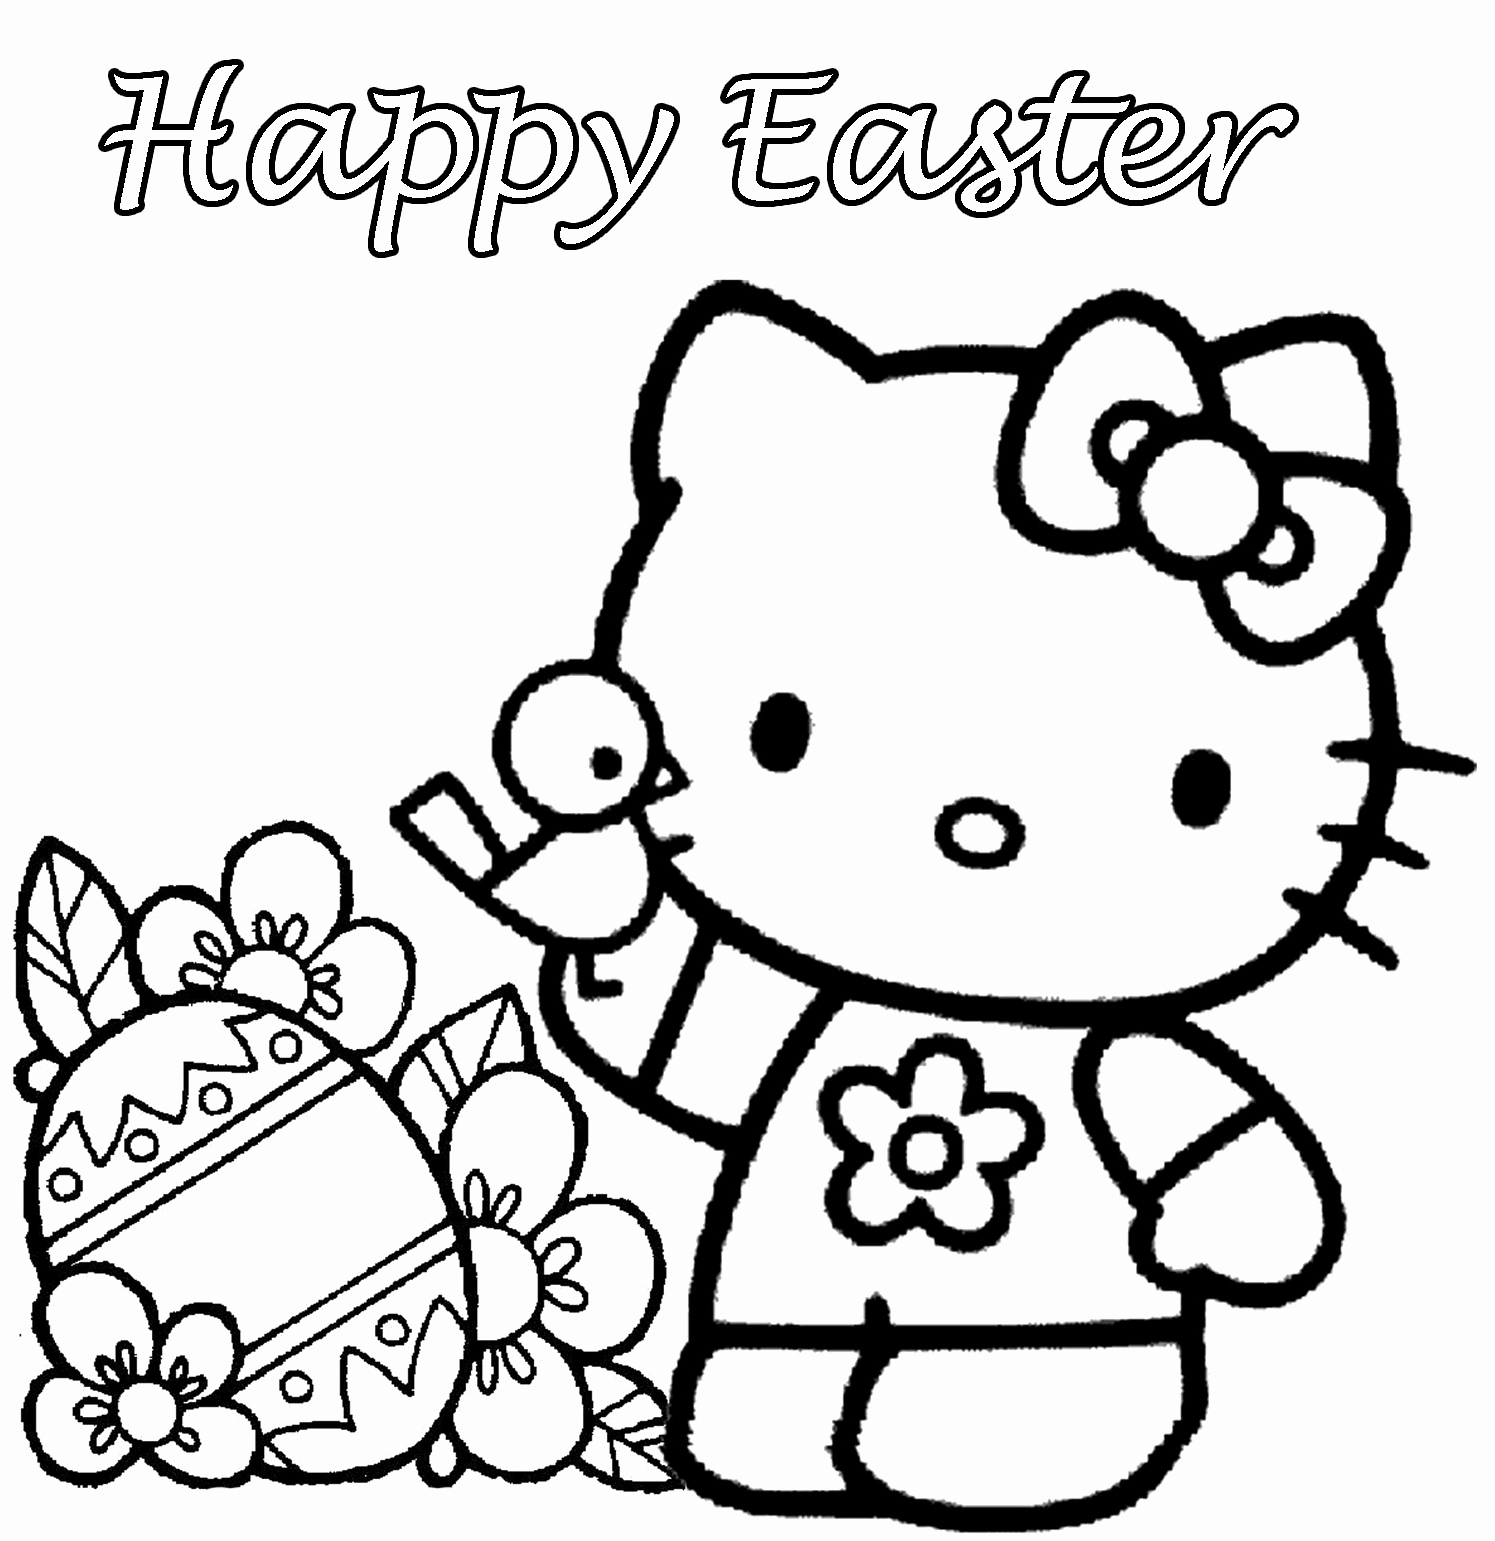 19 New S Hello Kitty Printable Coloring Pages Free to Print Of Proven Coloring Pages to Print Hello Kitty 2895 Unknown Printable